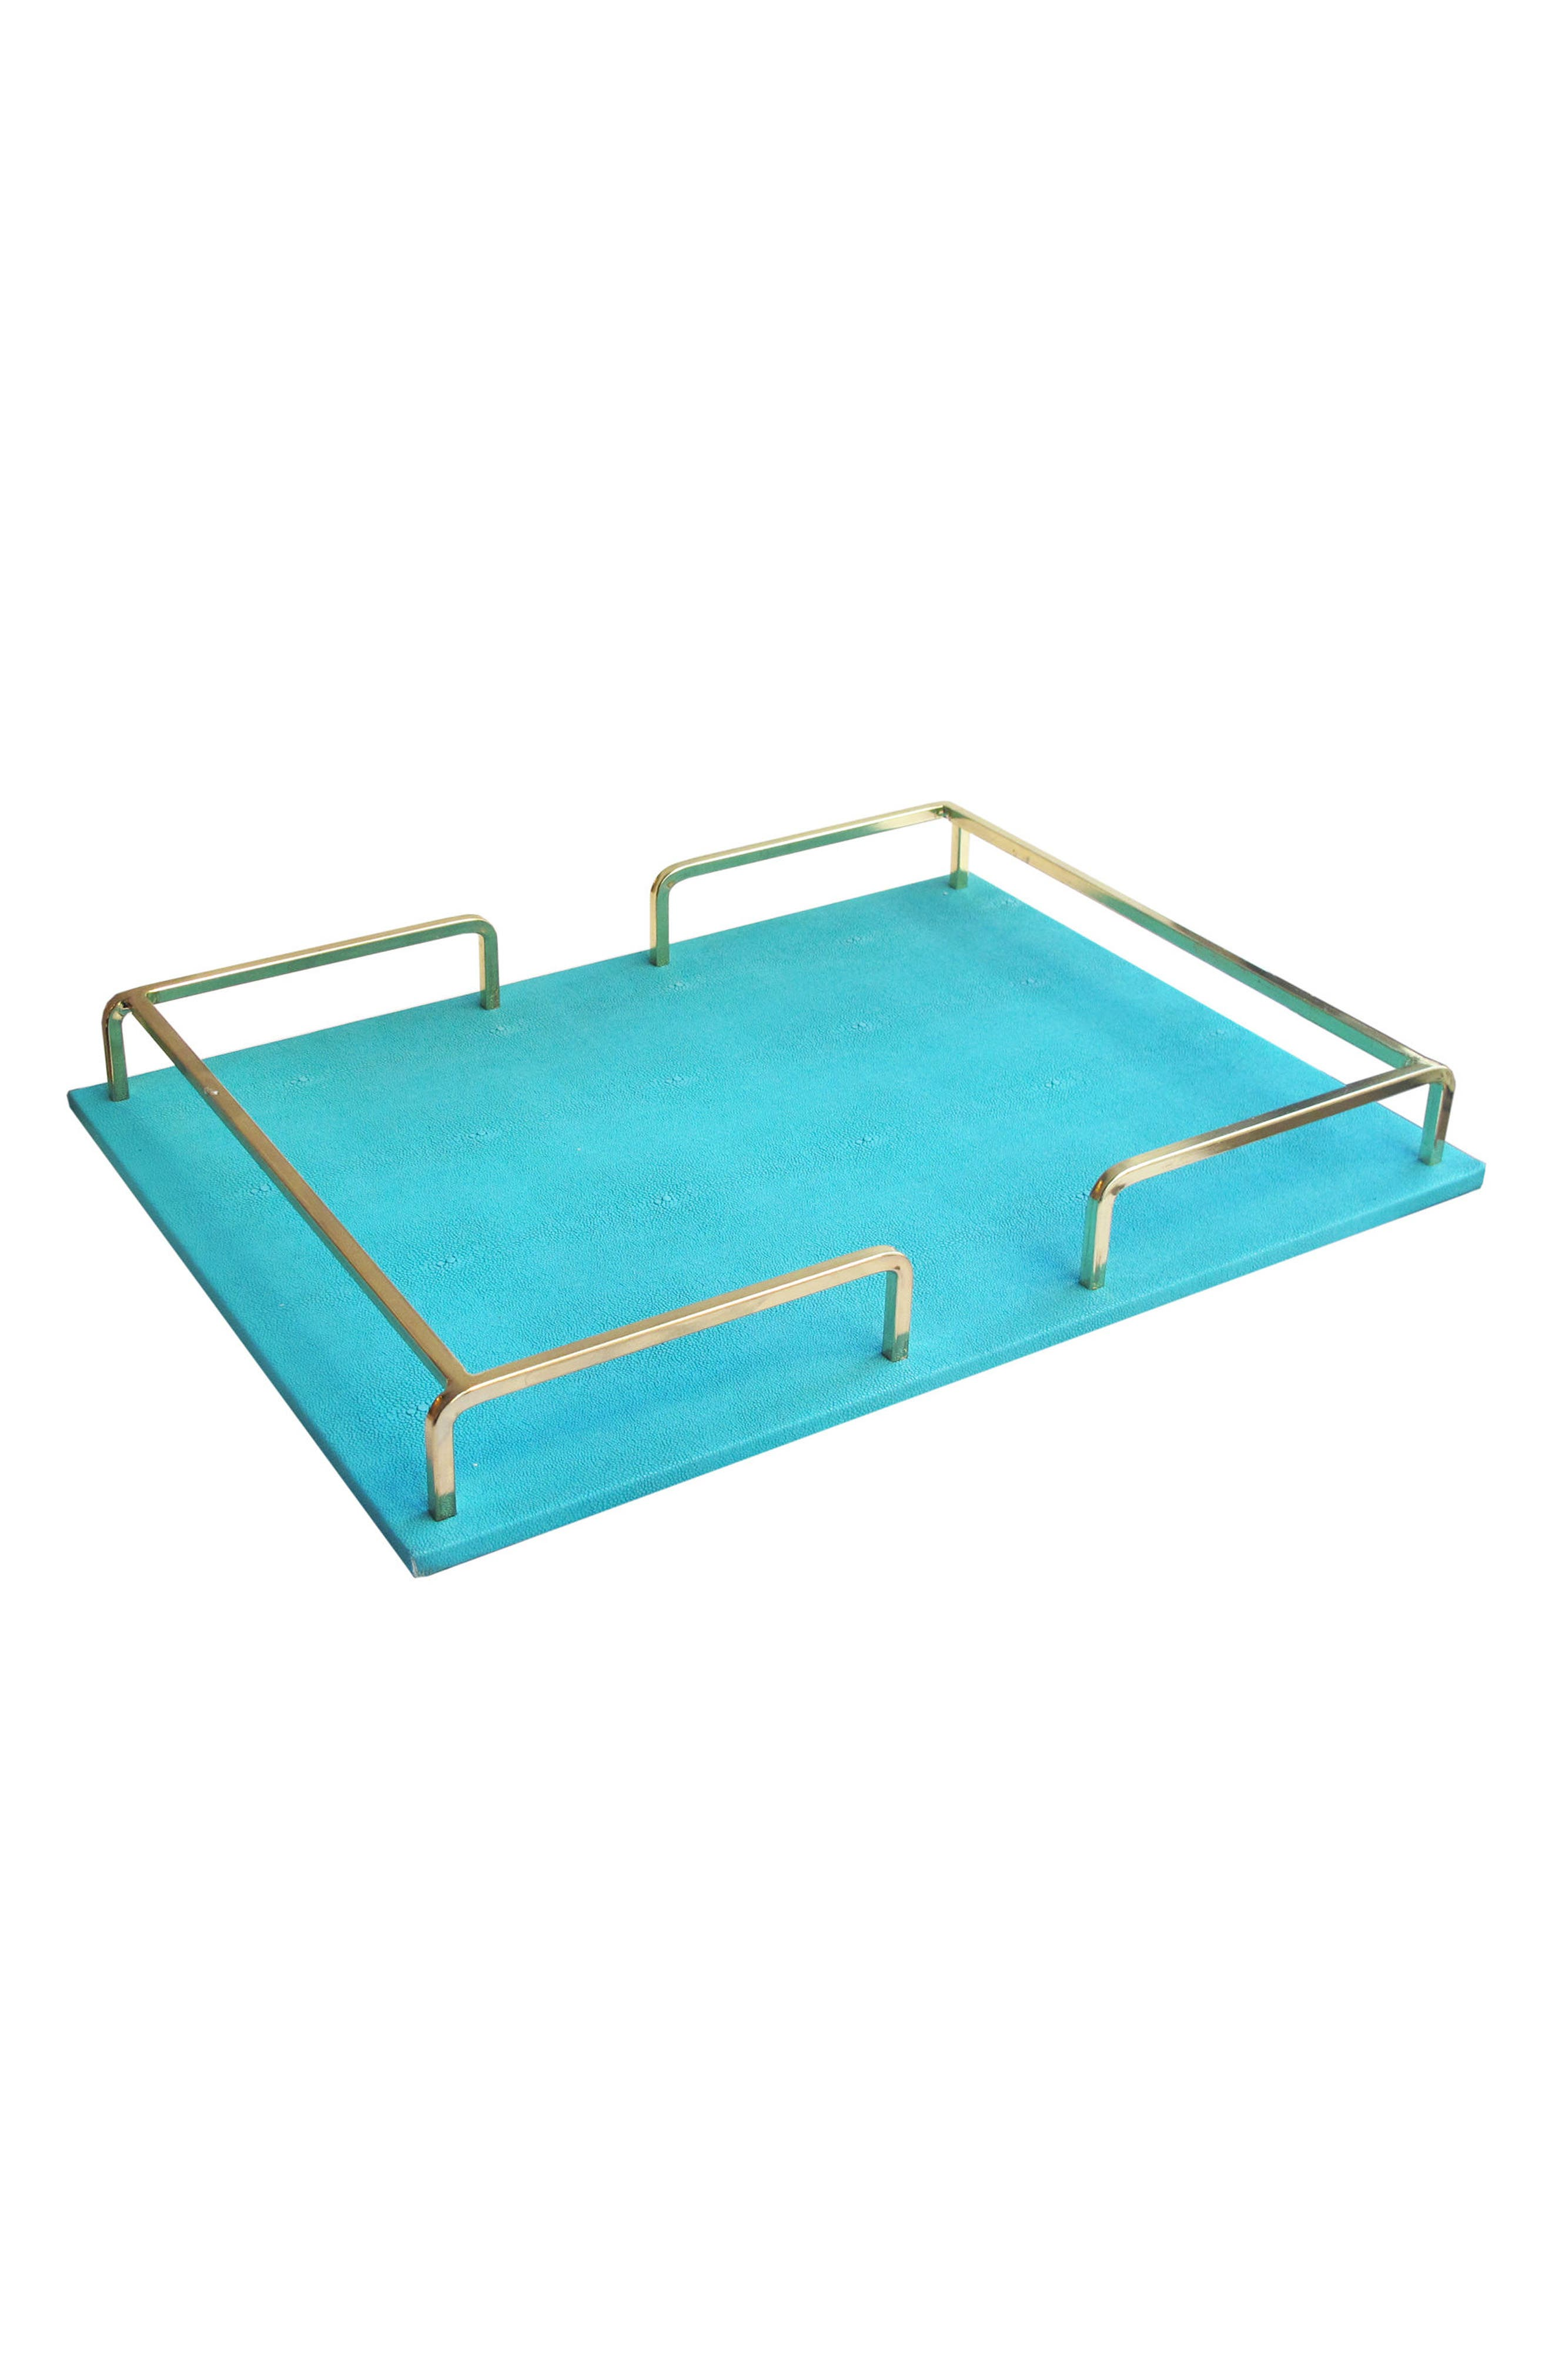 Shagrin Serving Tray,                         Main,                         color, Teal/ Gold